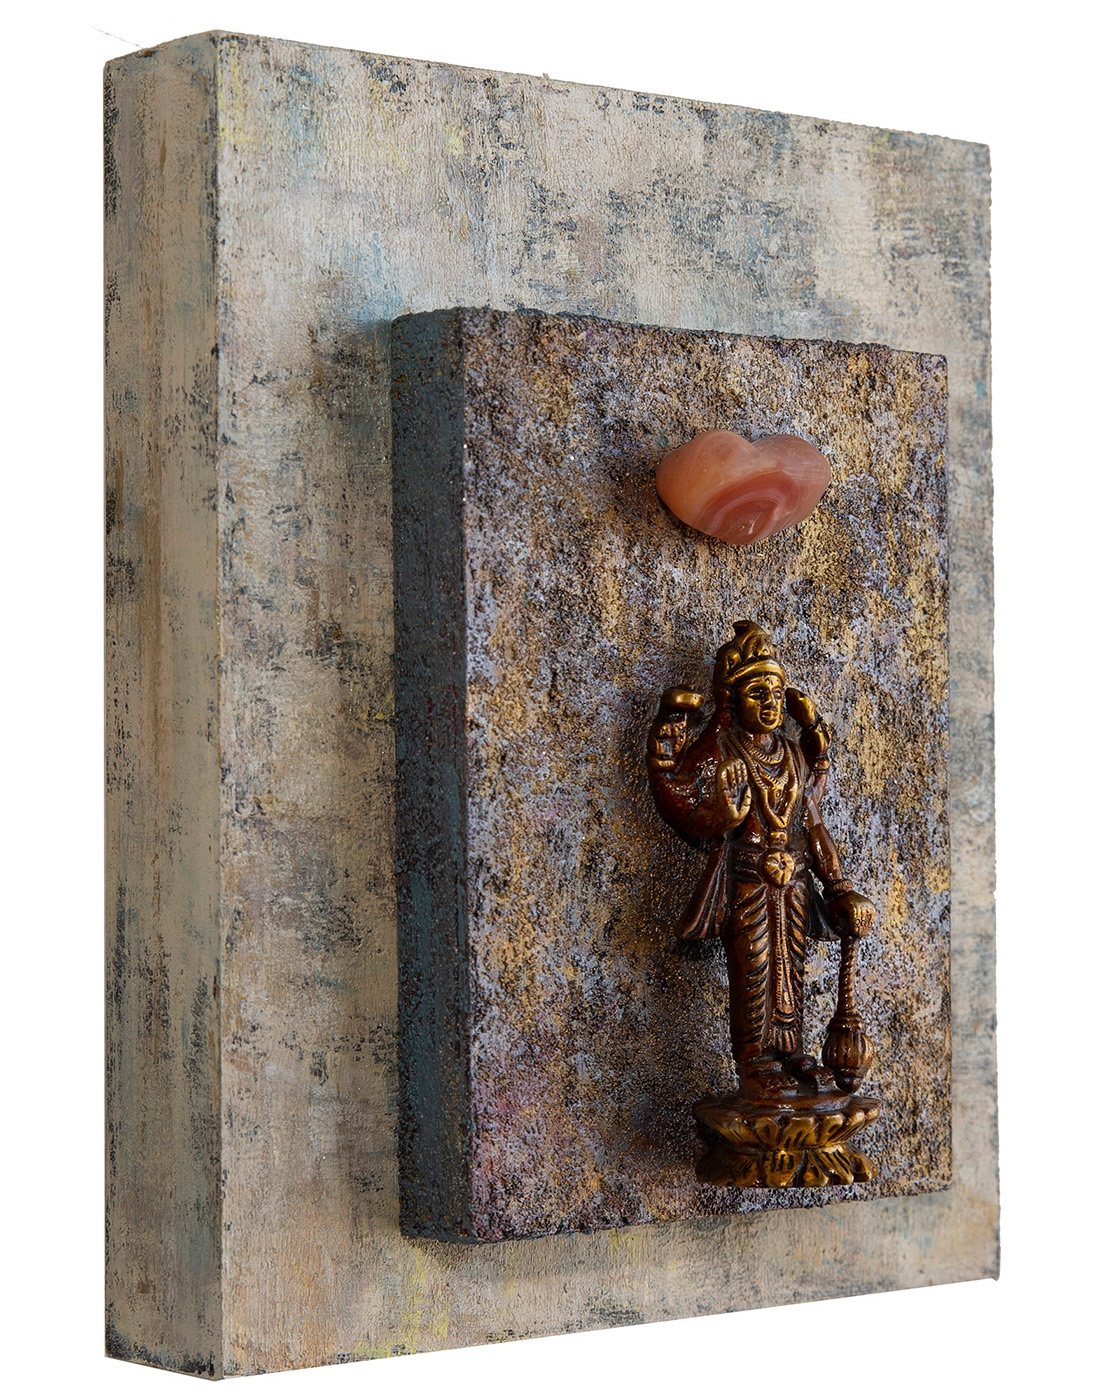 """Good Fortune, Positive Choices,""  Lakshmi with Carnelian, 2018 Acrylic, mixed media on cradled wood panels , 8""x10""x1.5""  Lakshmi is the HIndu deity of beauty, luxury and wealth, both material and  spiritual. Carnelian motivates for success, stimulates creativity, and helps trusting yourself and your perceptions.  © Marilyn Grad 2018"